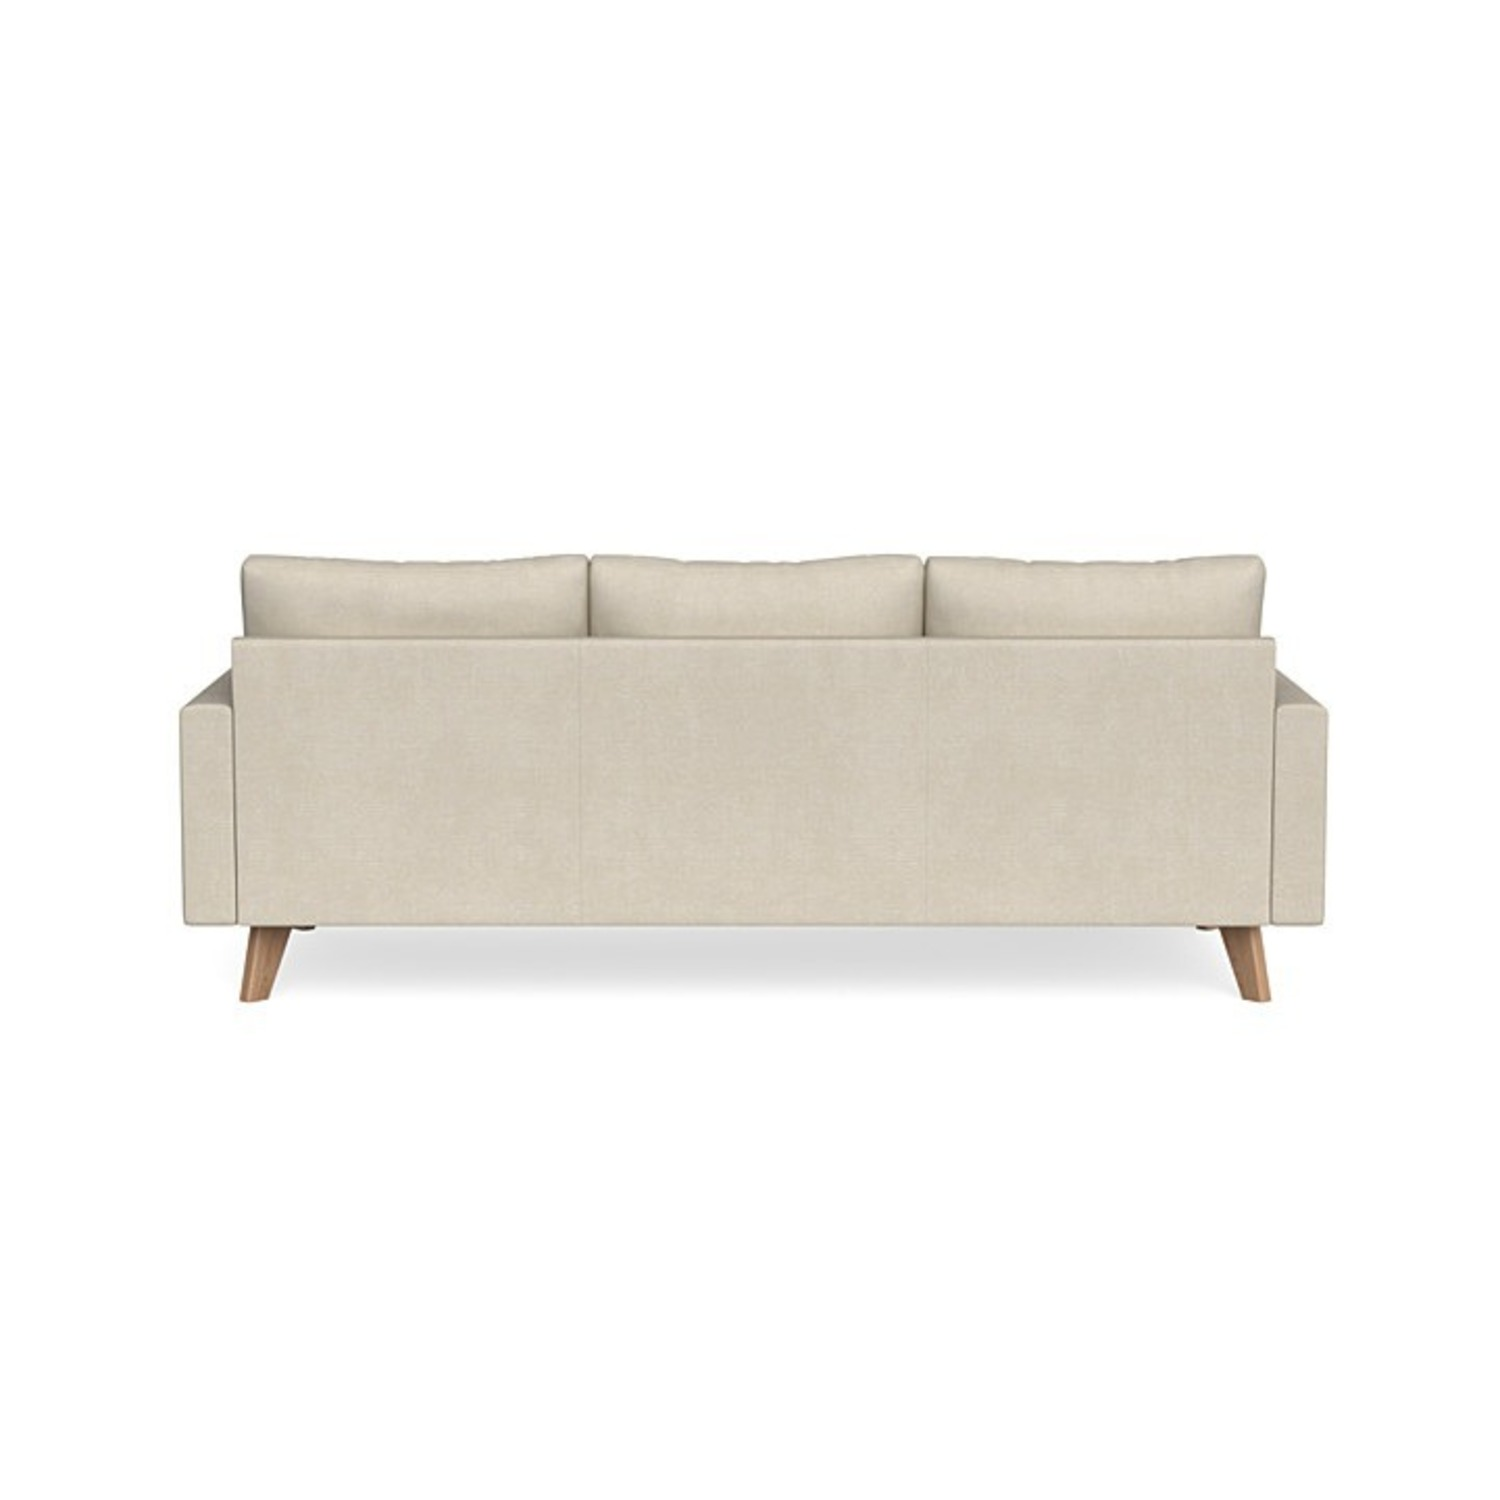 Inside Weather Custom Milo Sectional in Almond - image-2